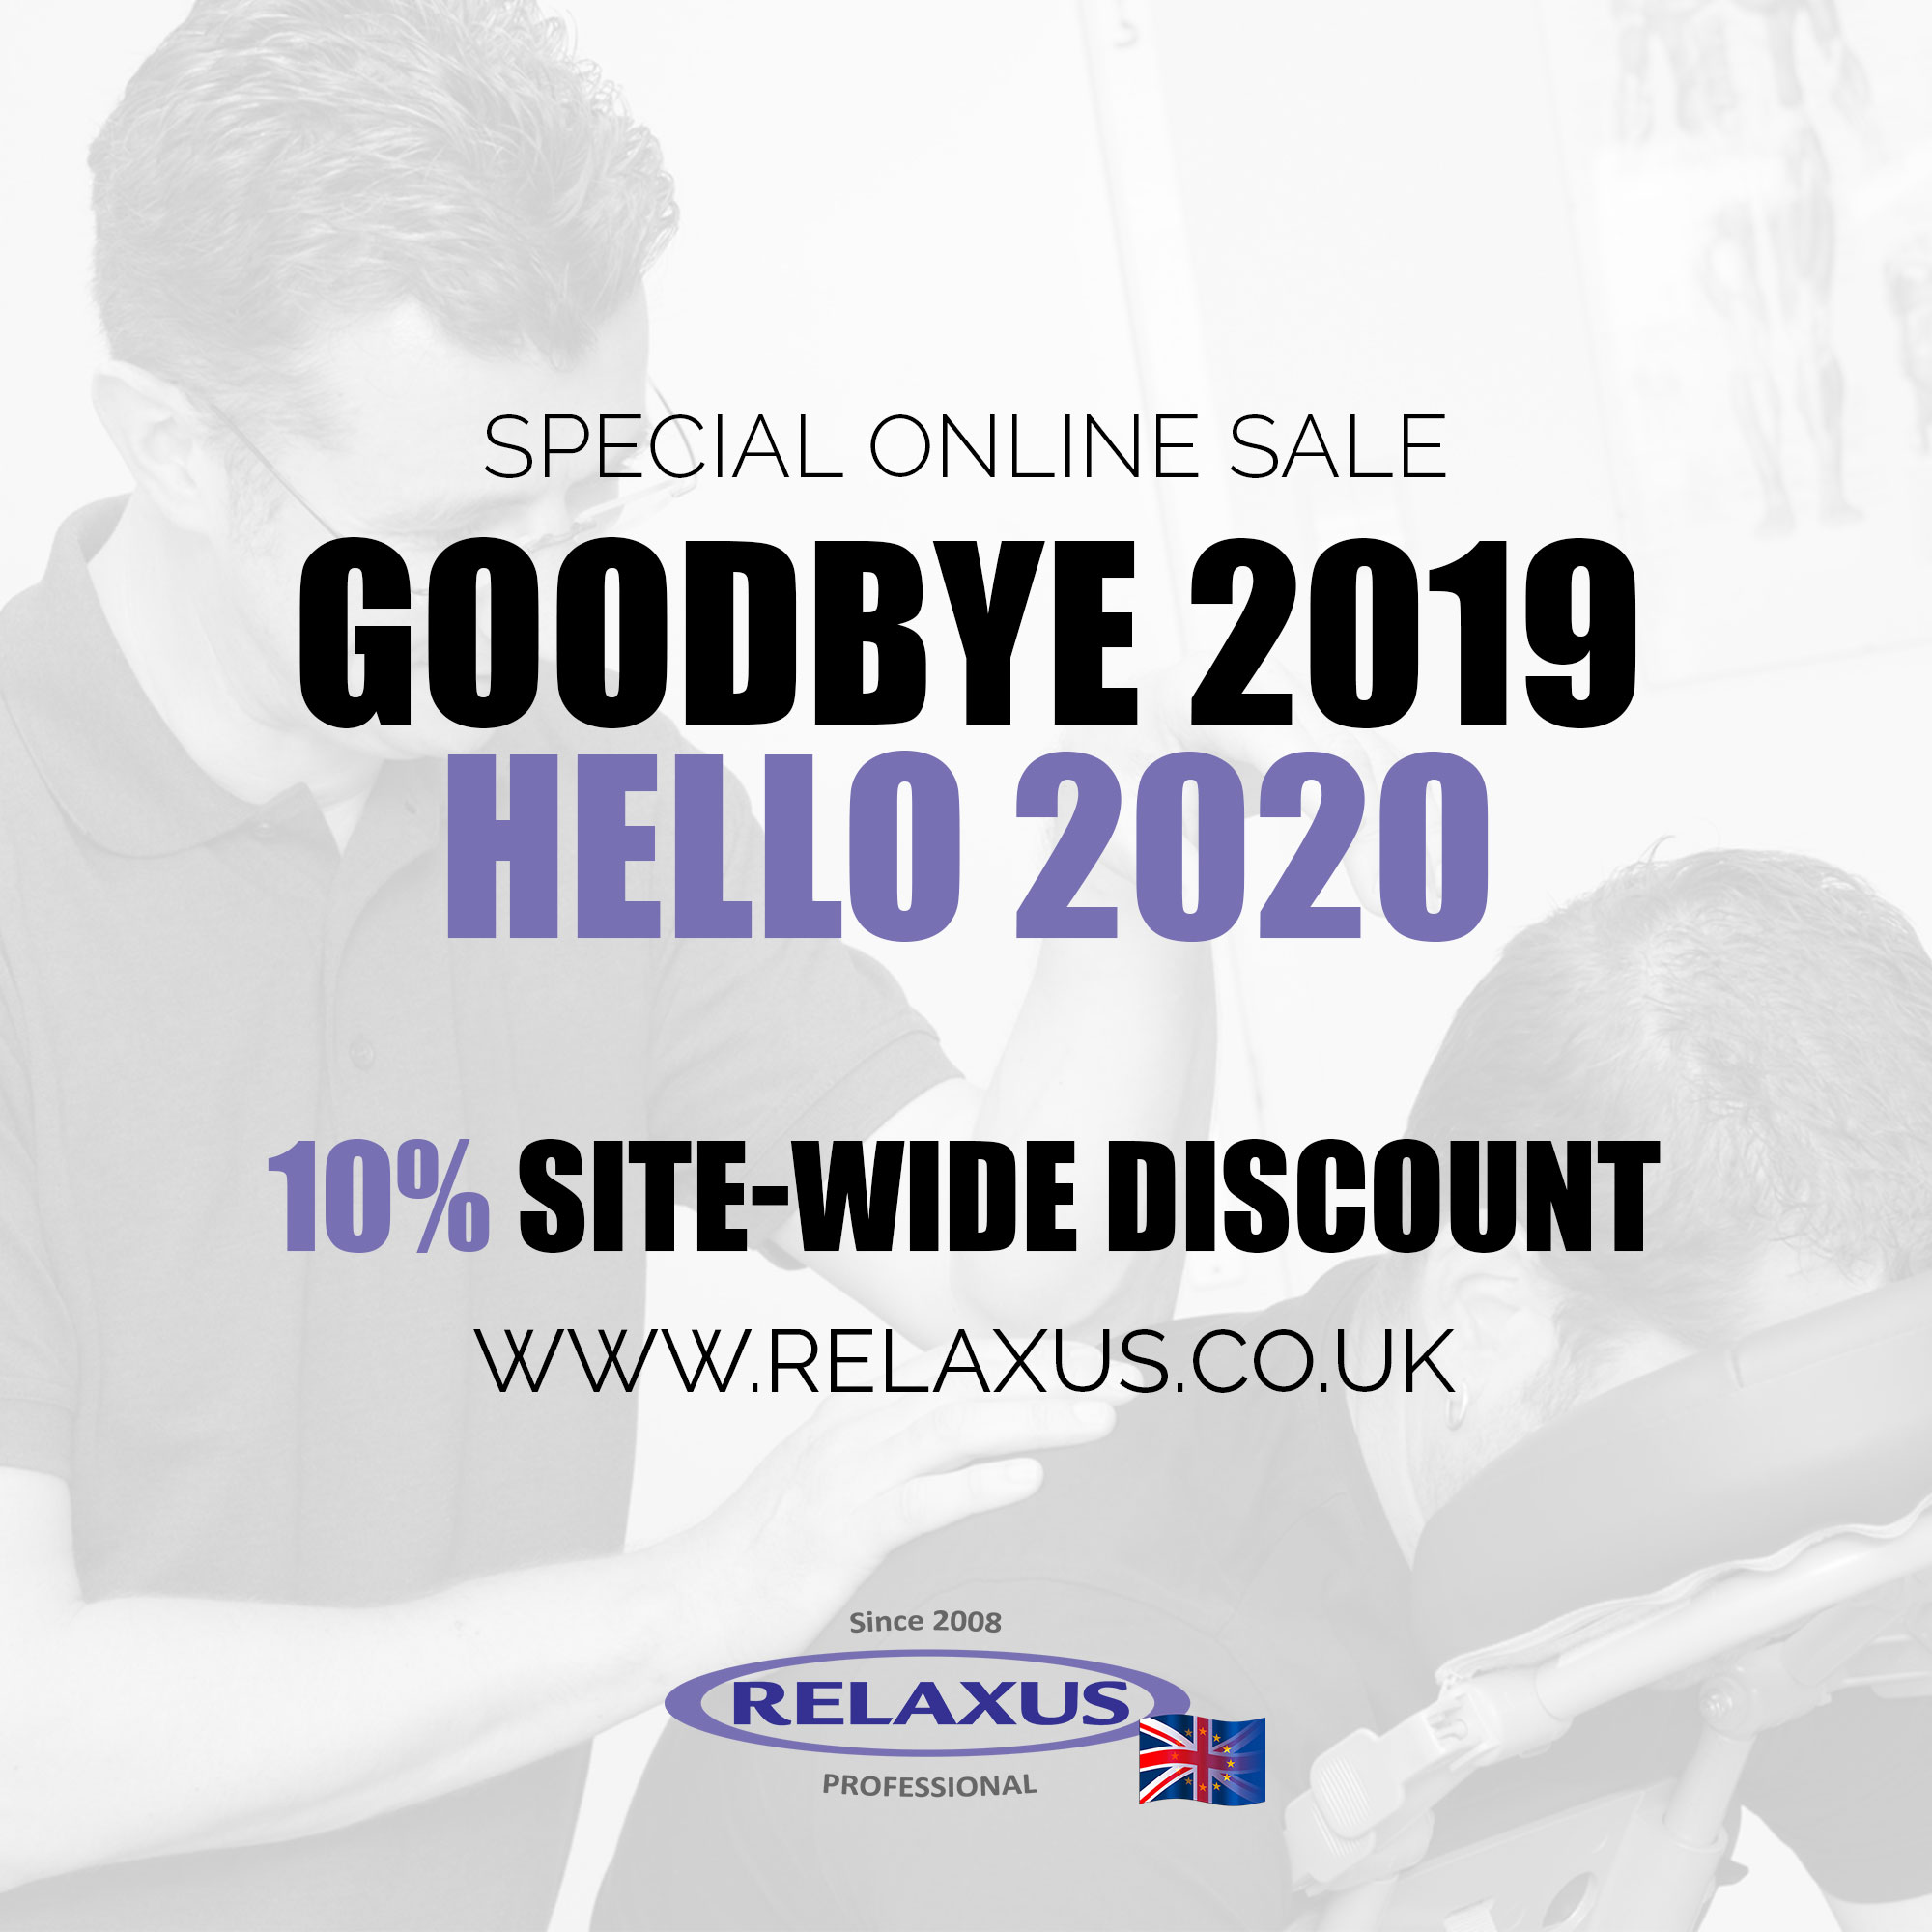 End of Year 2020 Online Sale on Relaxus UK